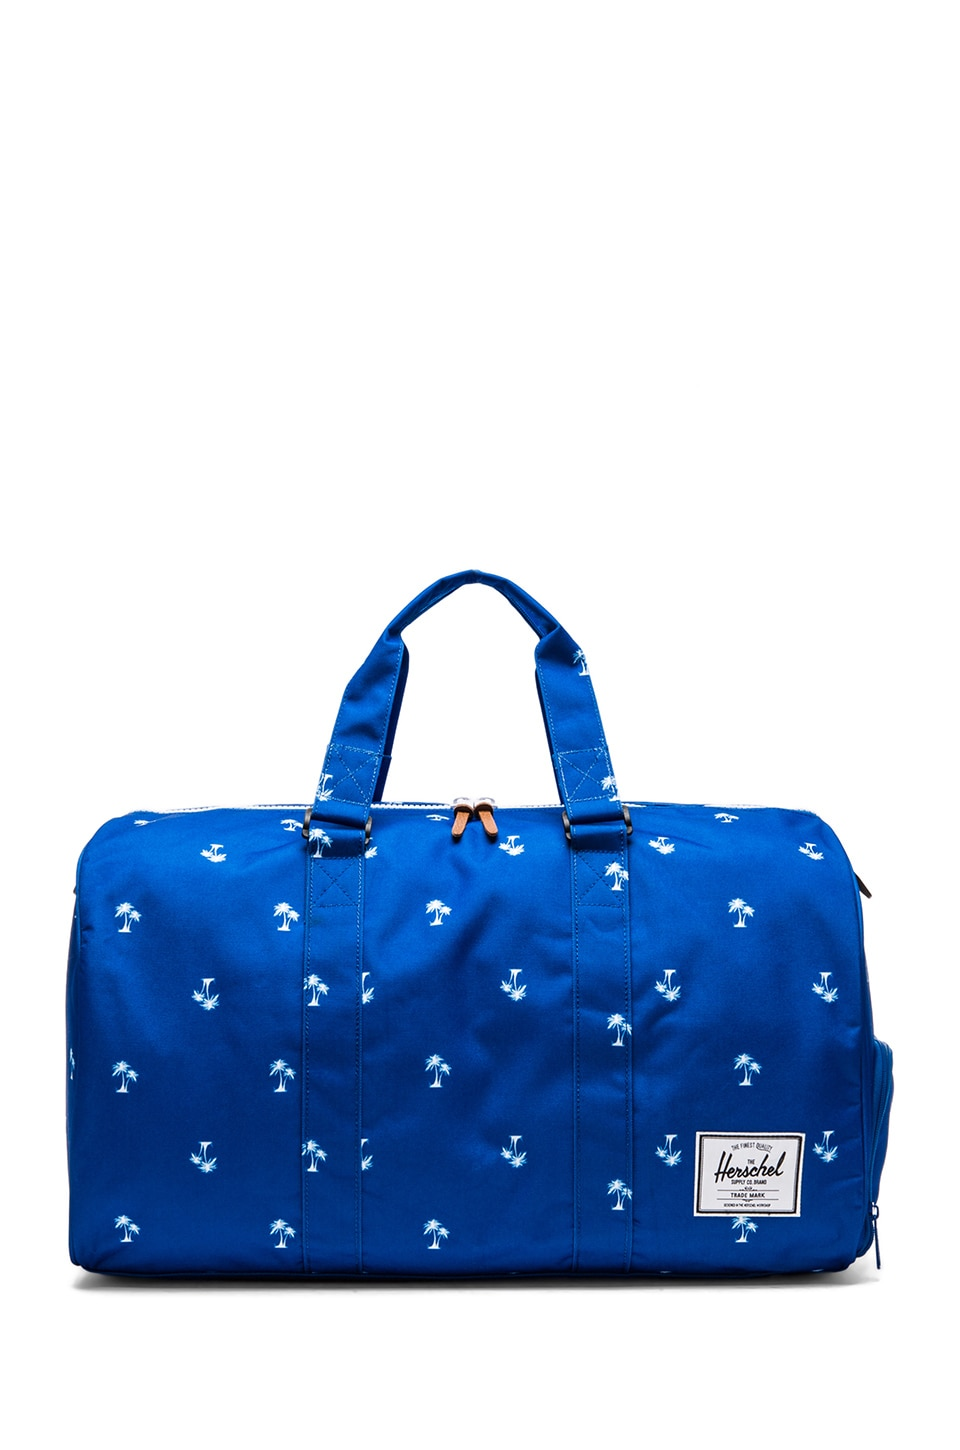 Herschel Supply Co. Novel Duffle in Resort